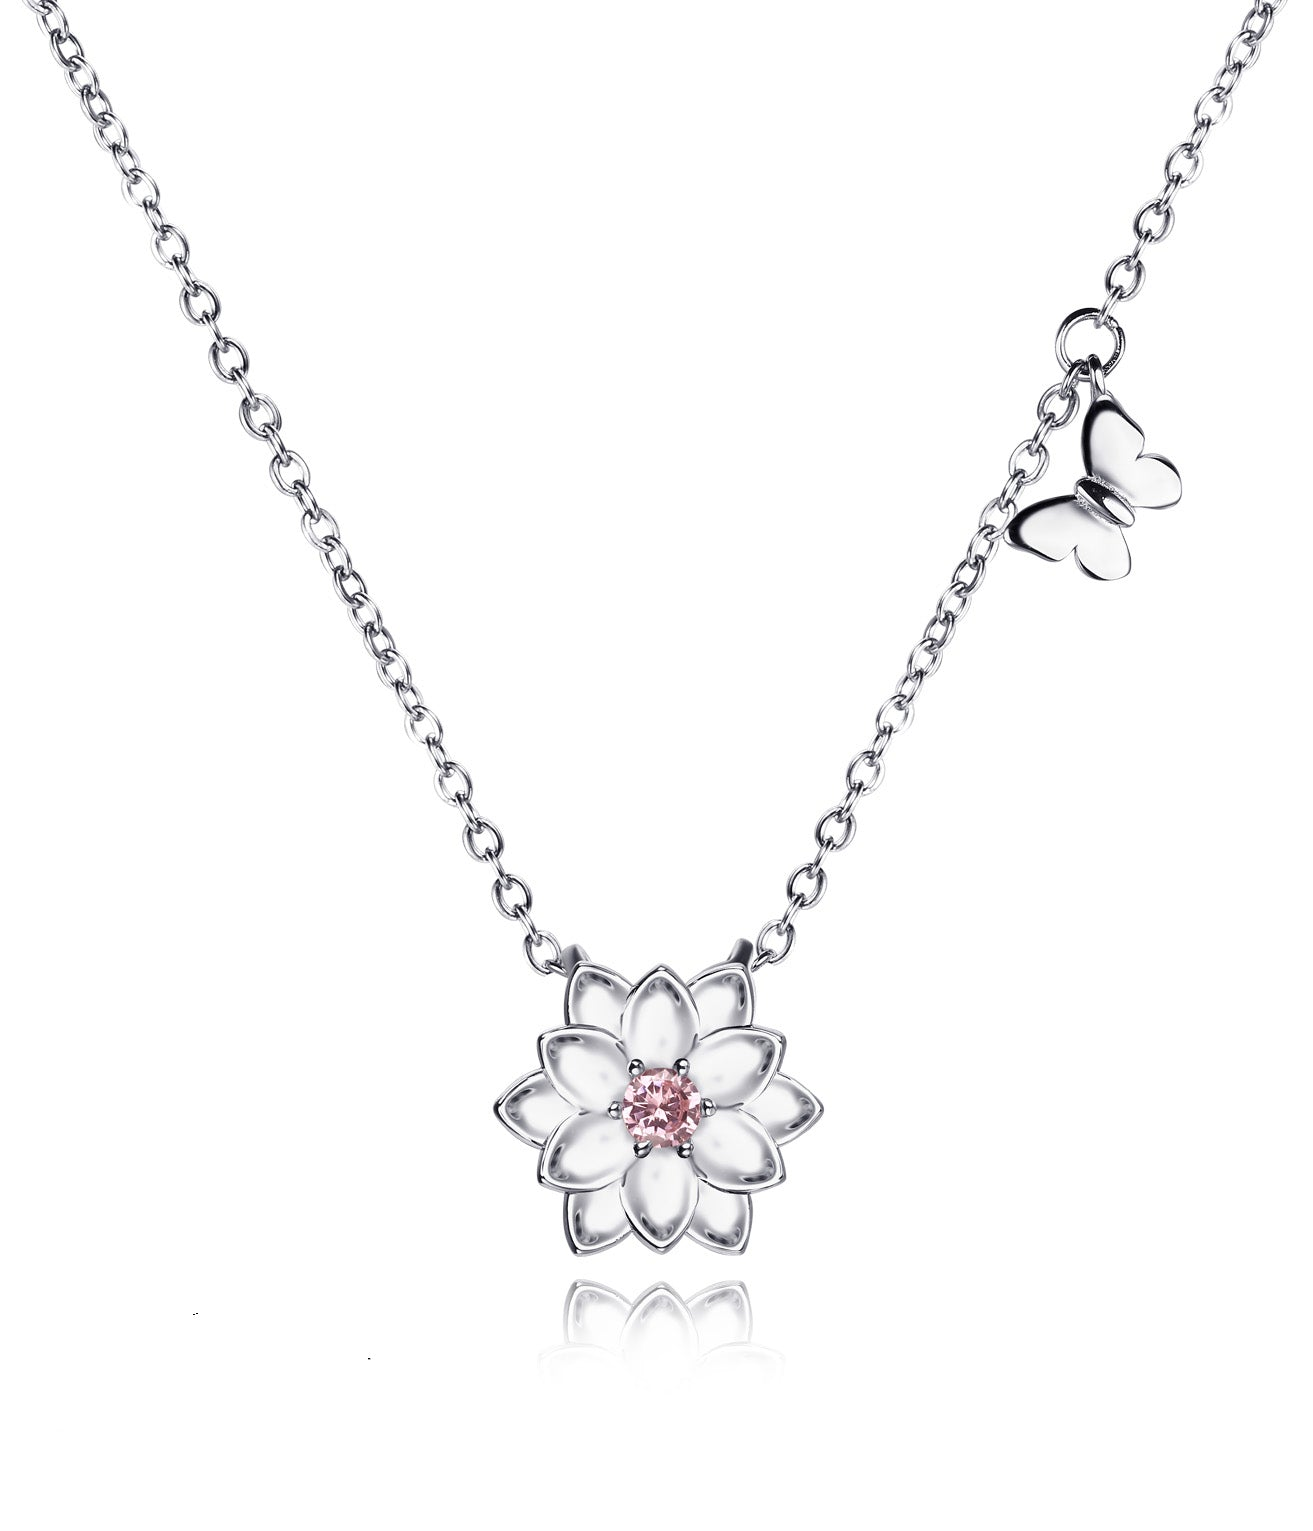 Ariella Lotus Flower Butterfly Necklace, Yoga Jewelry Gifts, 925 Sterling Silver - Quan Jewelry